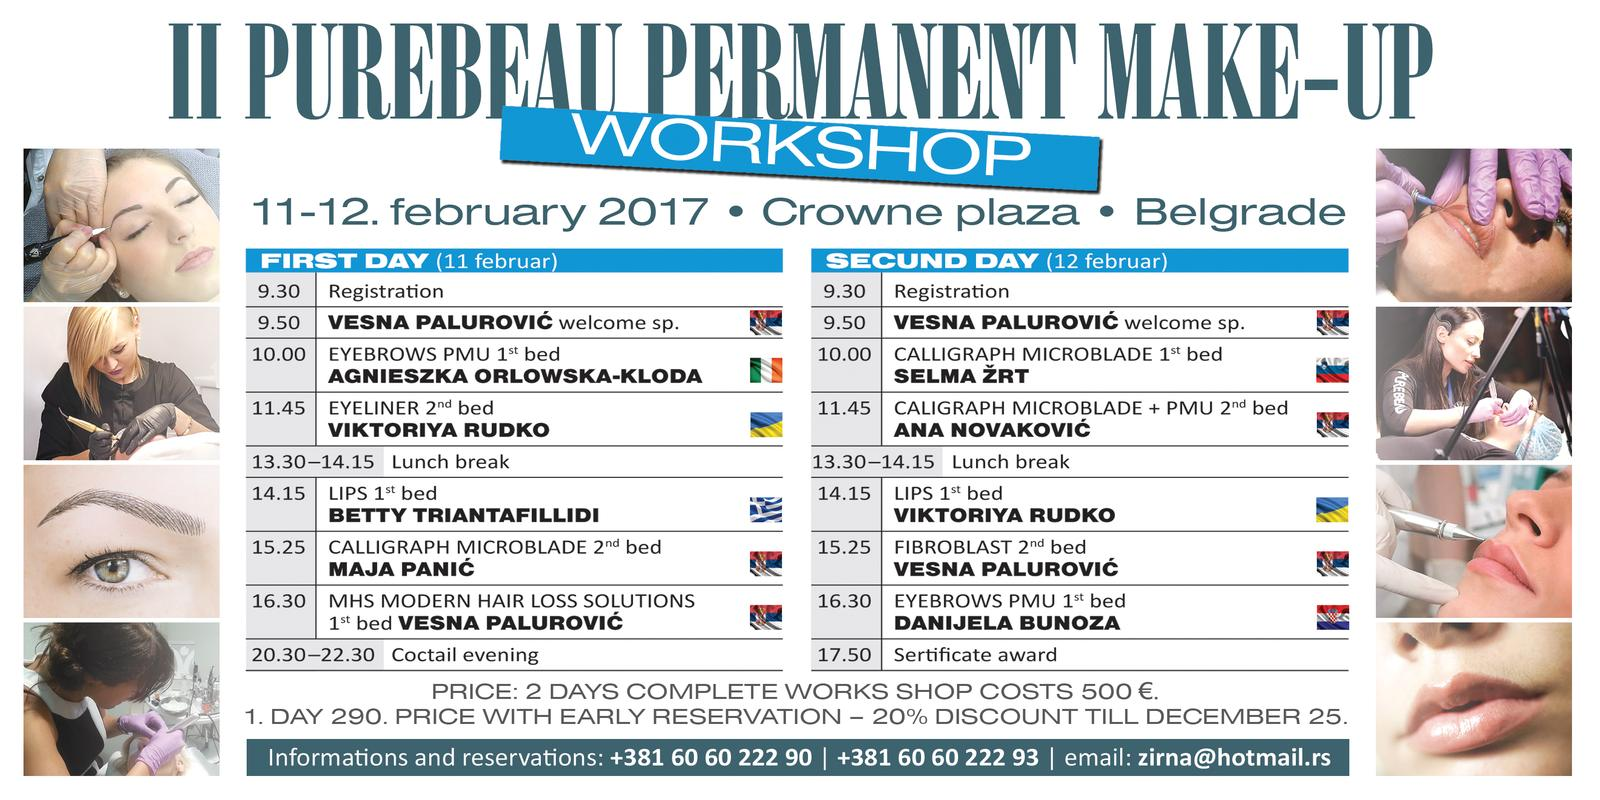 Program Drugog internacionalnog Purebeau workshopa na Balkanu